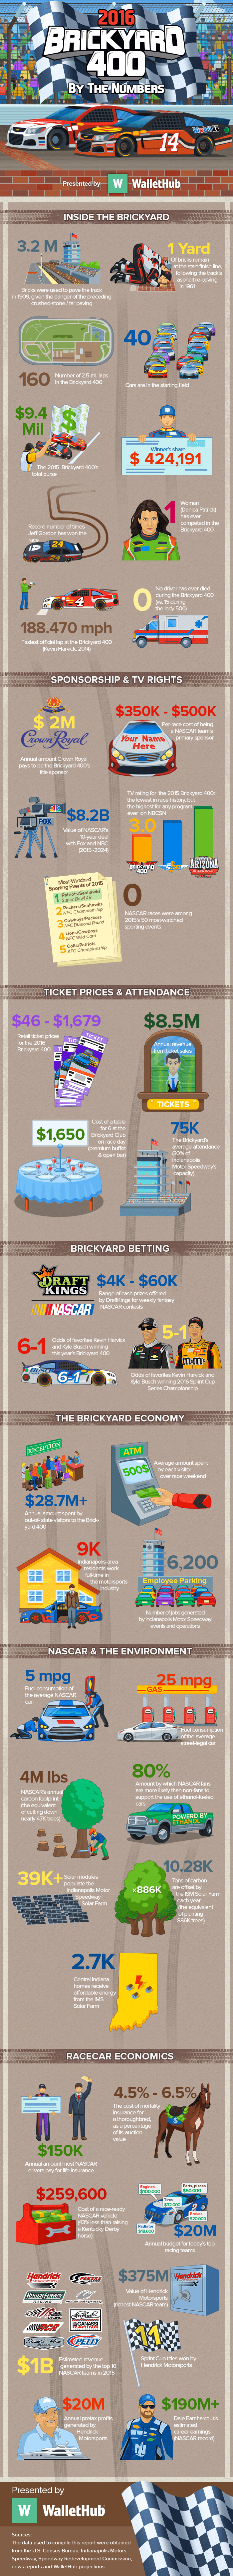 brickyard-400-by-the-numbers